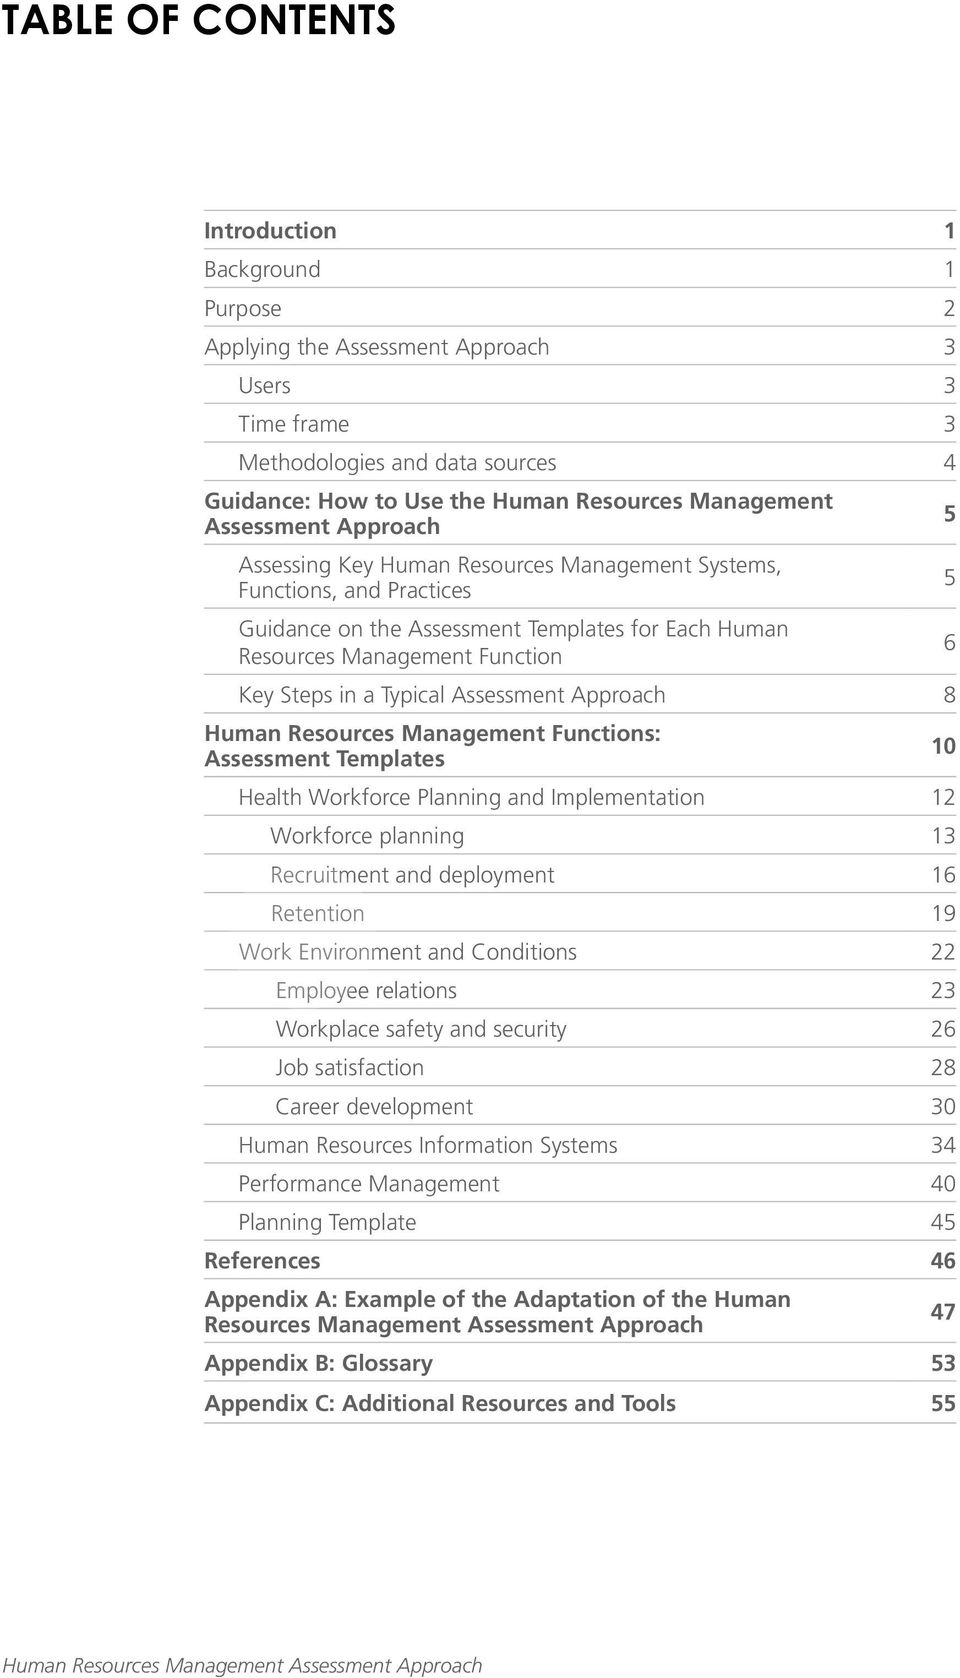 Typical Assessment Approach 8 Human Resources Management Functions: Assessment Templates 10 Health Workforce Planning and Implementation 12 Workforce planning 13 Recruitment and deployment 16